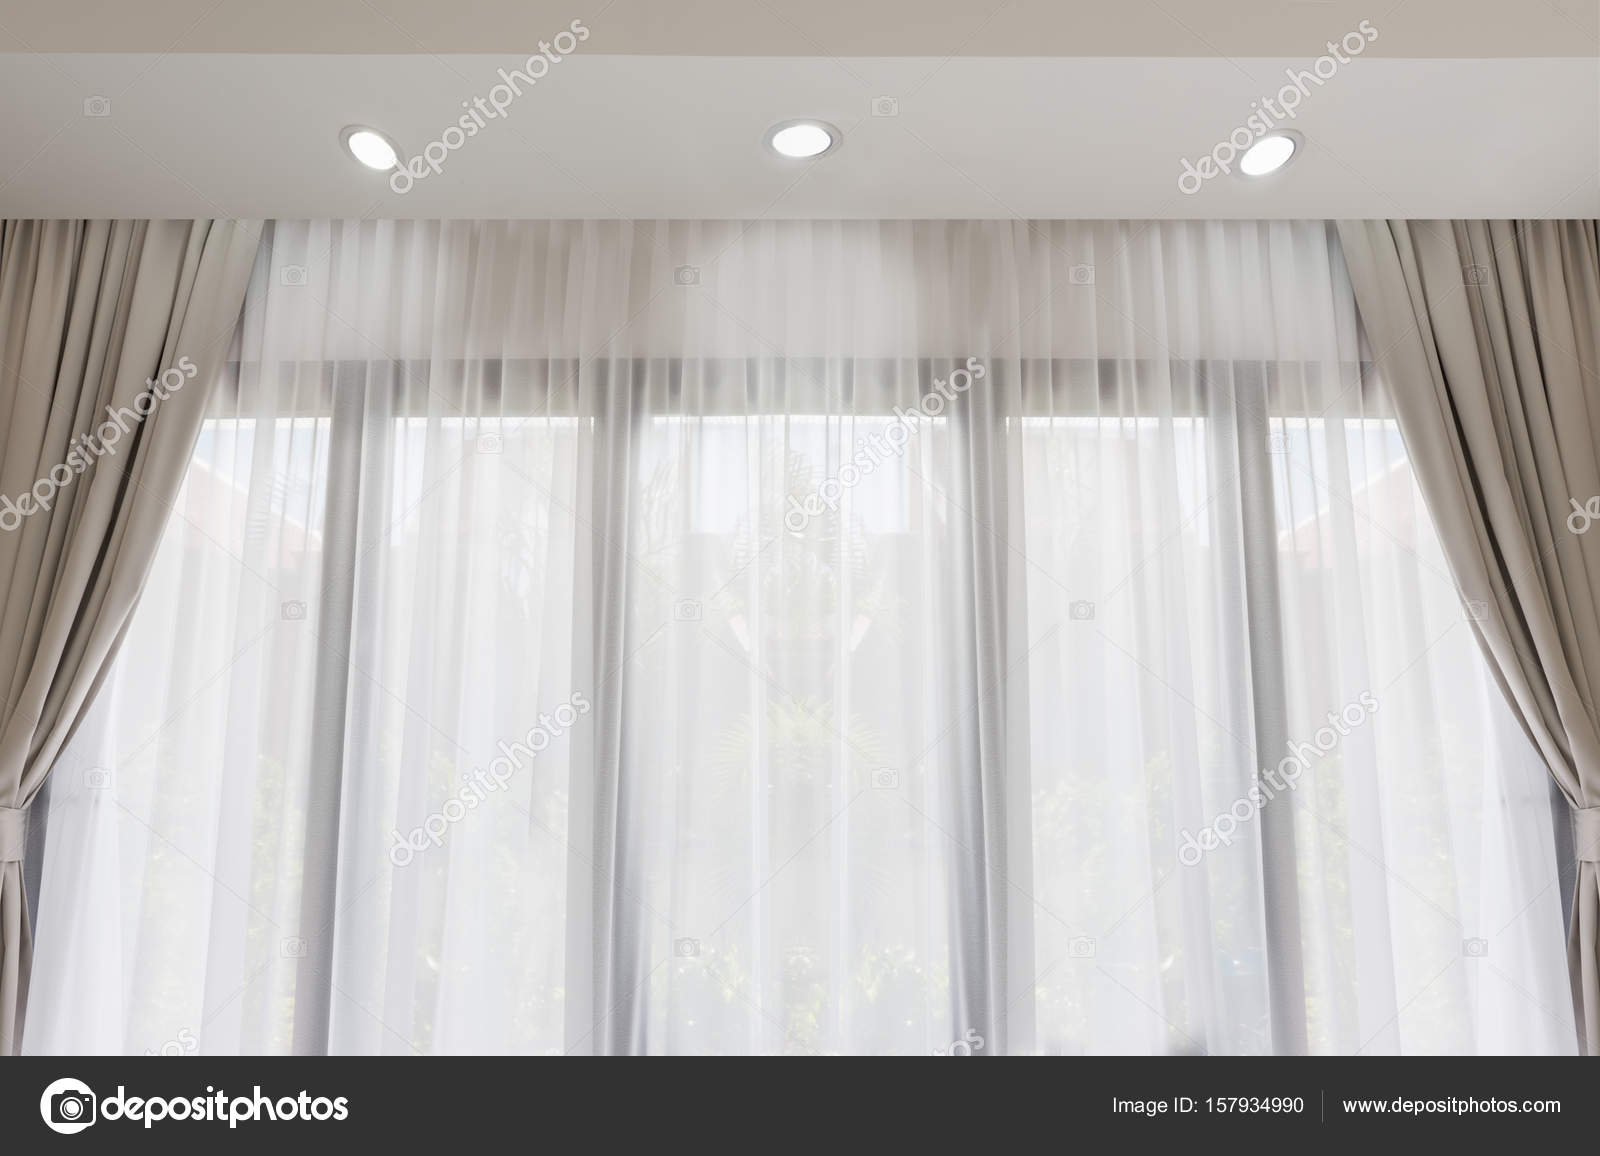 Modern Living Room With Soft White And Grey Curtain Background Stock Photo Image By C Jcsmilly 157934990